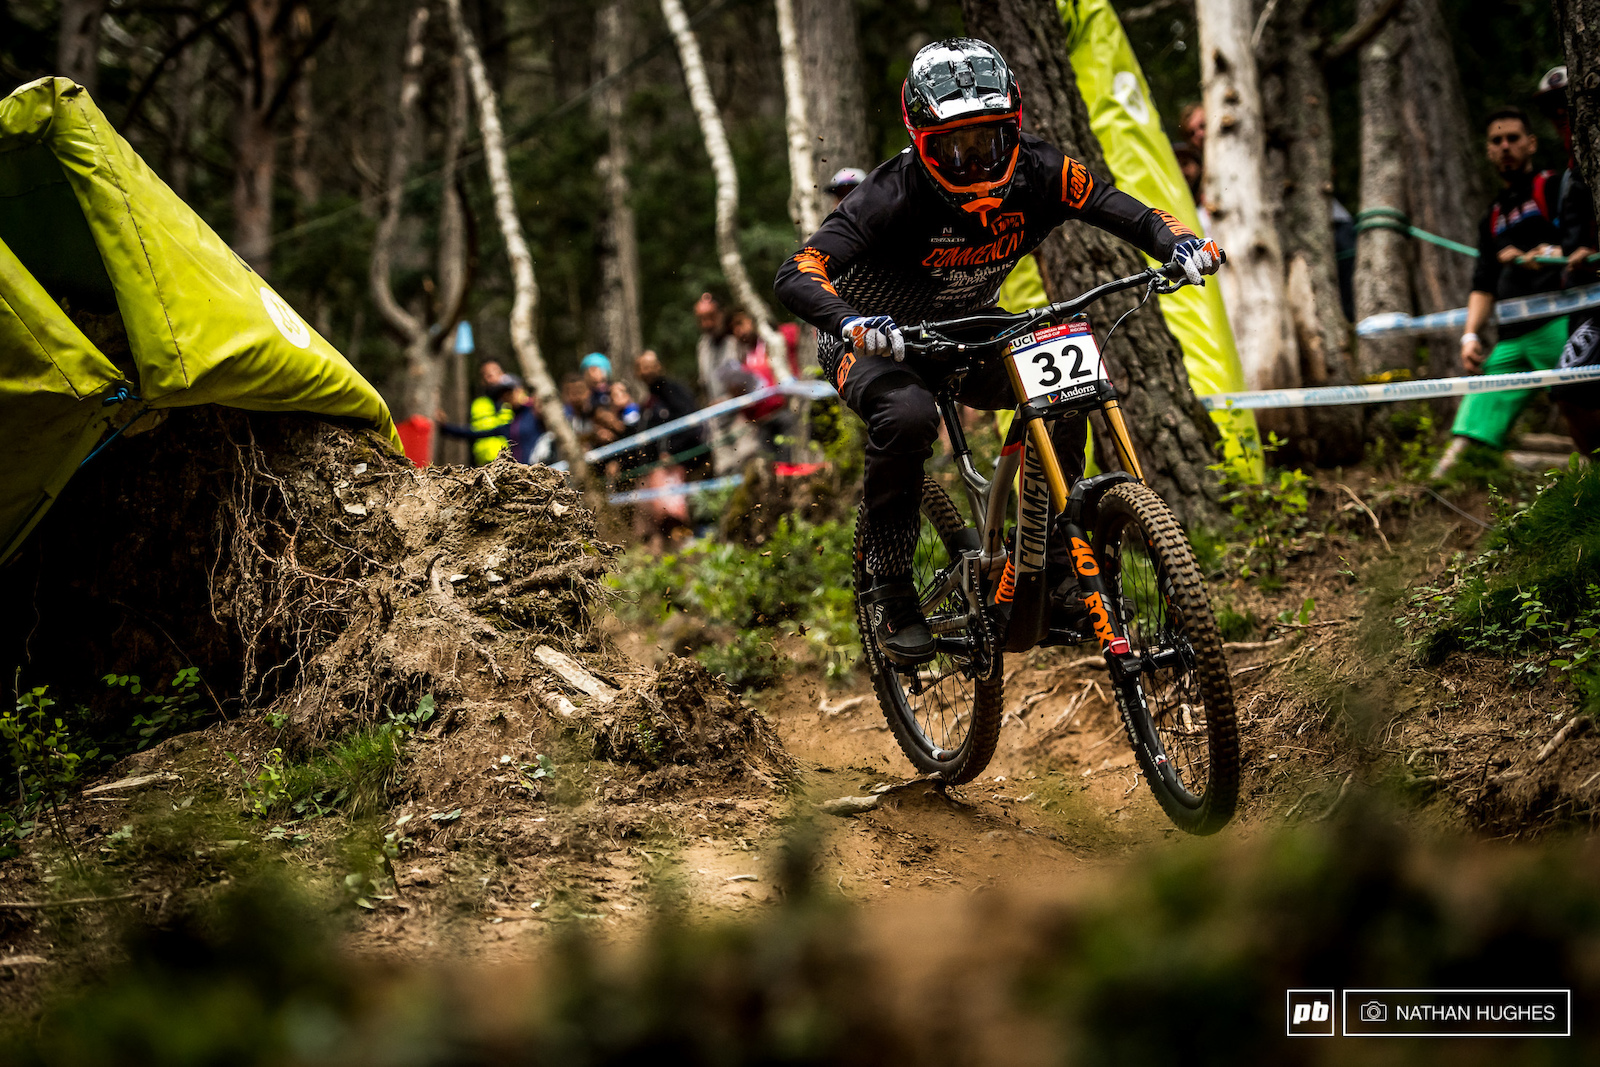 They may not speak French here in Andorra but Amaury Pierron sure speaks the right language on this zesty course.